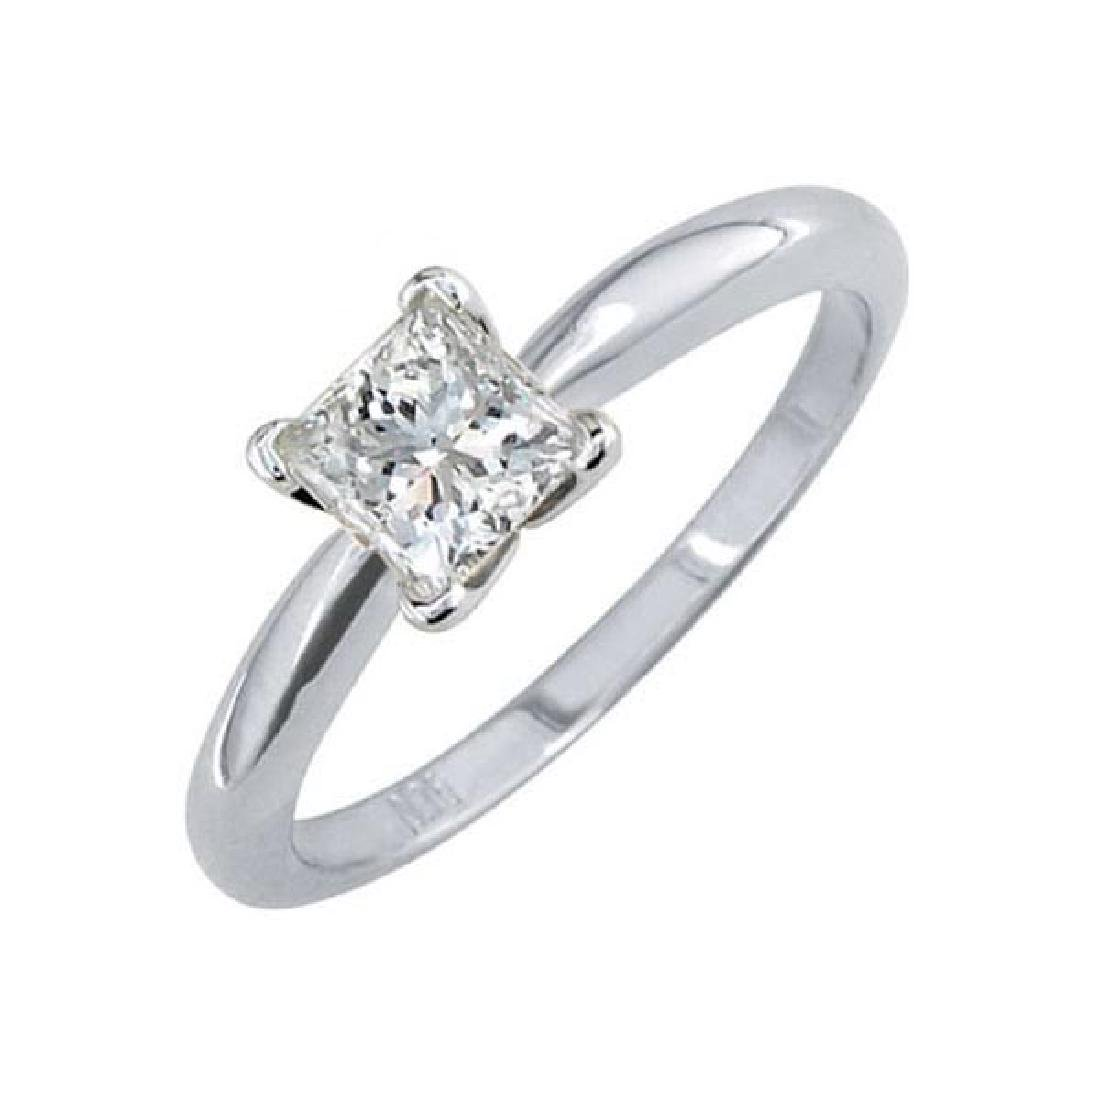 Certified 0.79 CTW Princess Diamond Solitaire 14k Ring